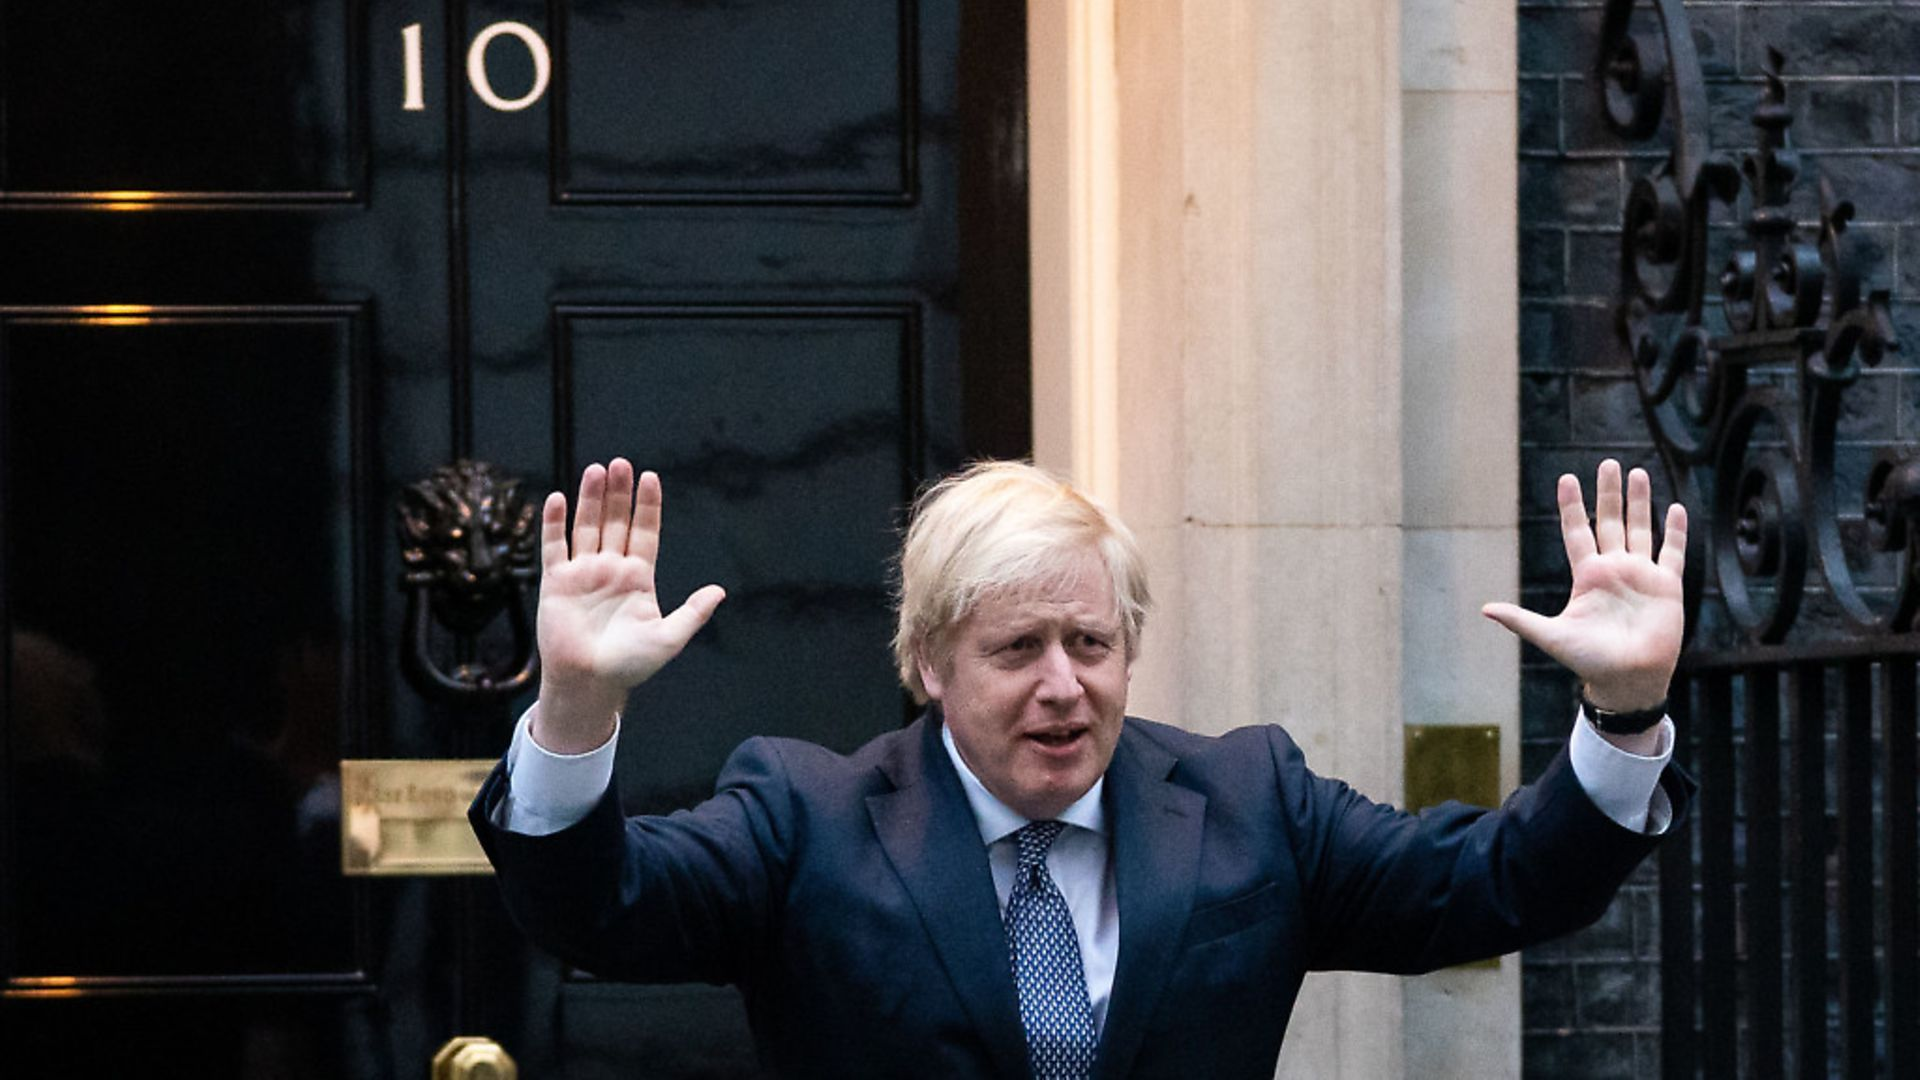 Prime Minister Boris Johnson stands outside 10 Downing Street as he joins in the applause to salute local heroes during Thursday's nationwide Clap for Carers. Photograph: Aaron Chown/PA Wire. - Credit: PA